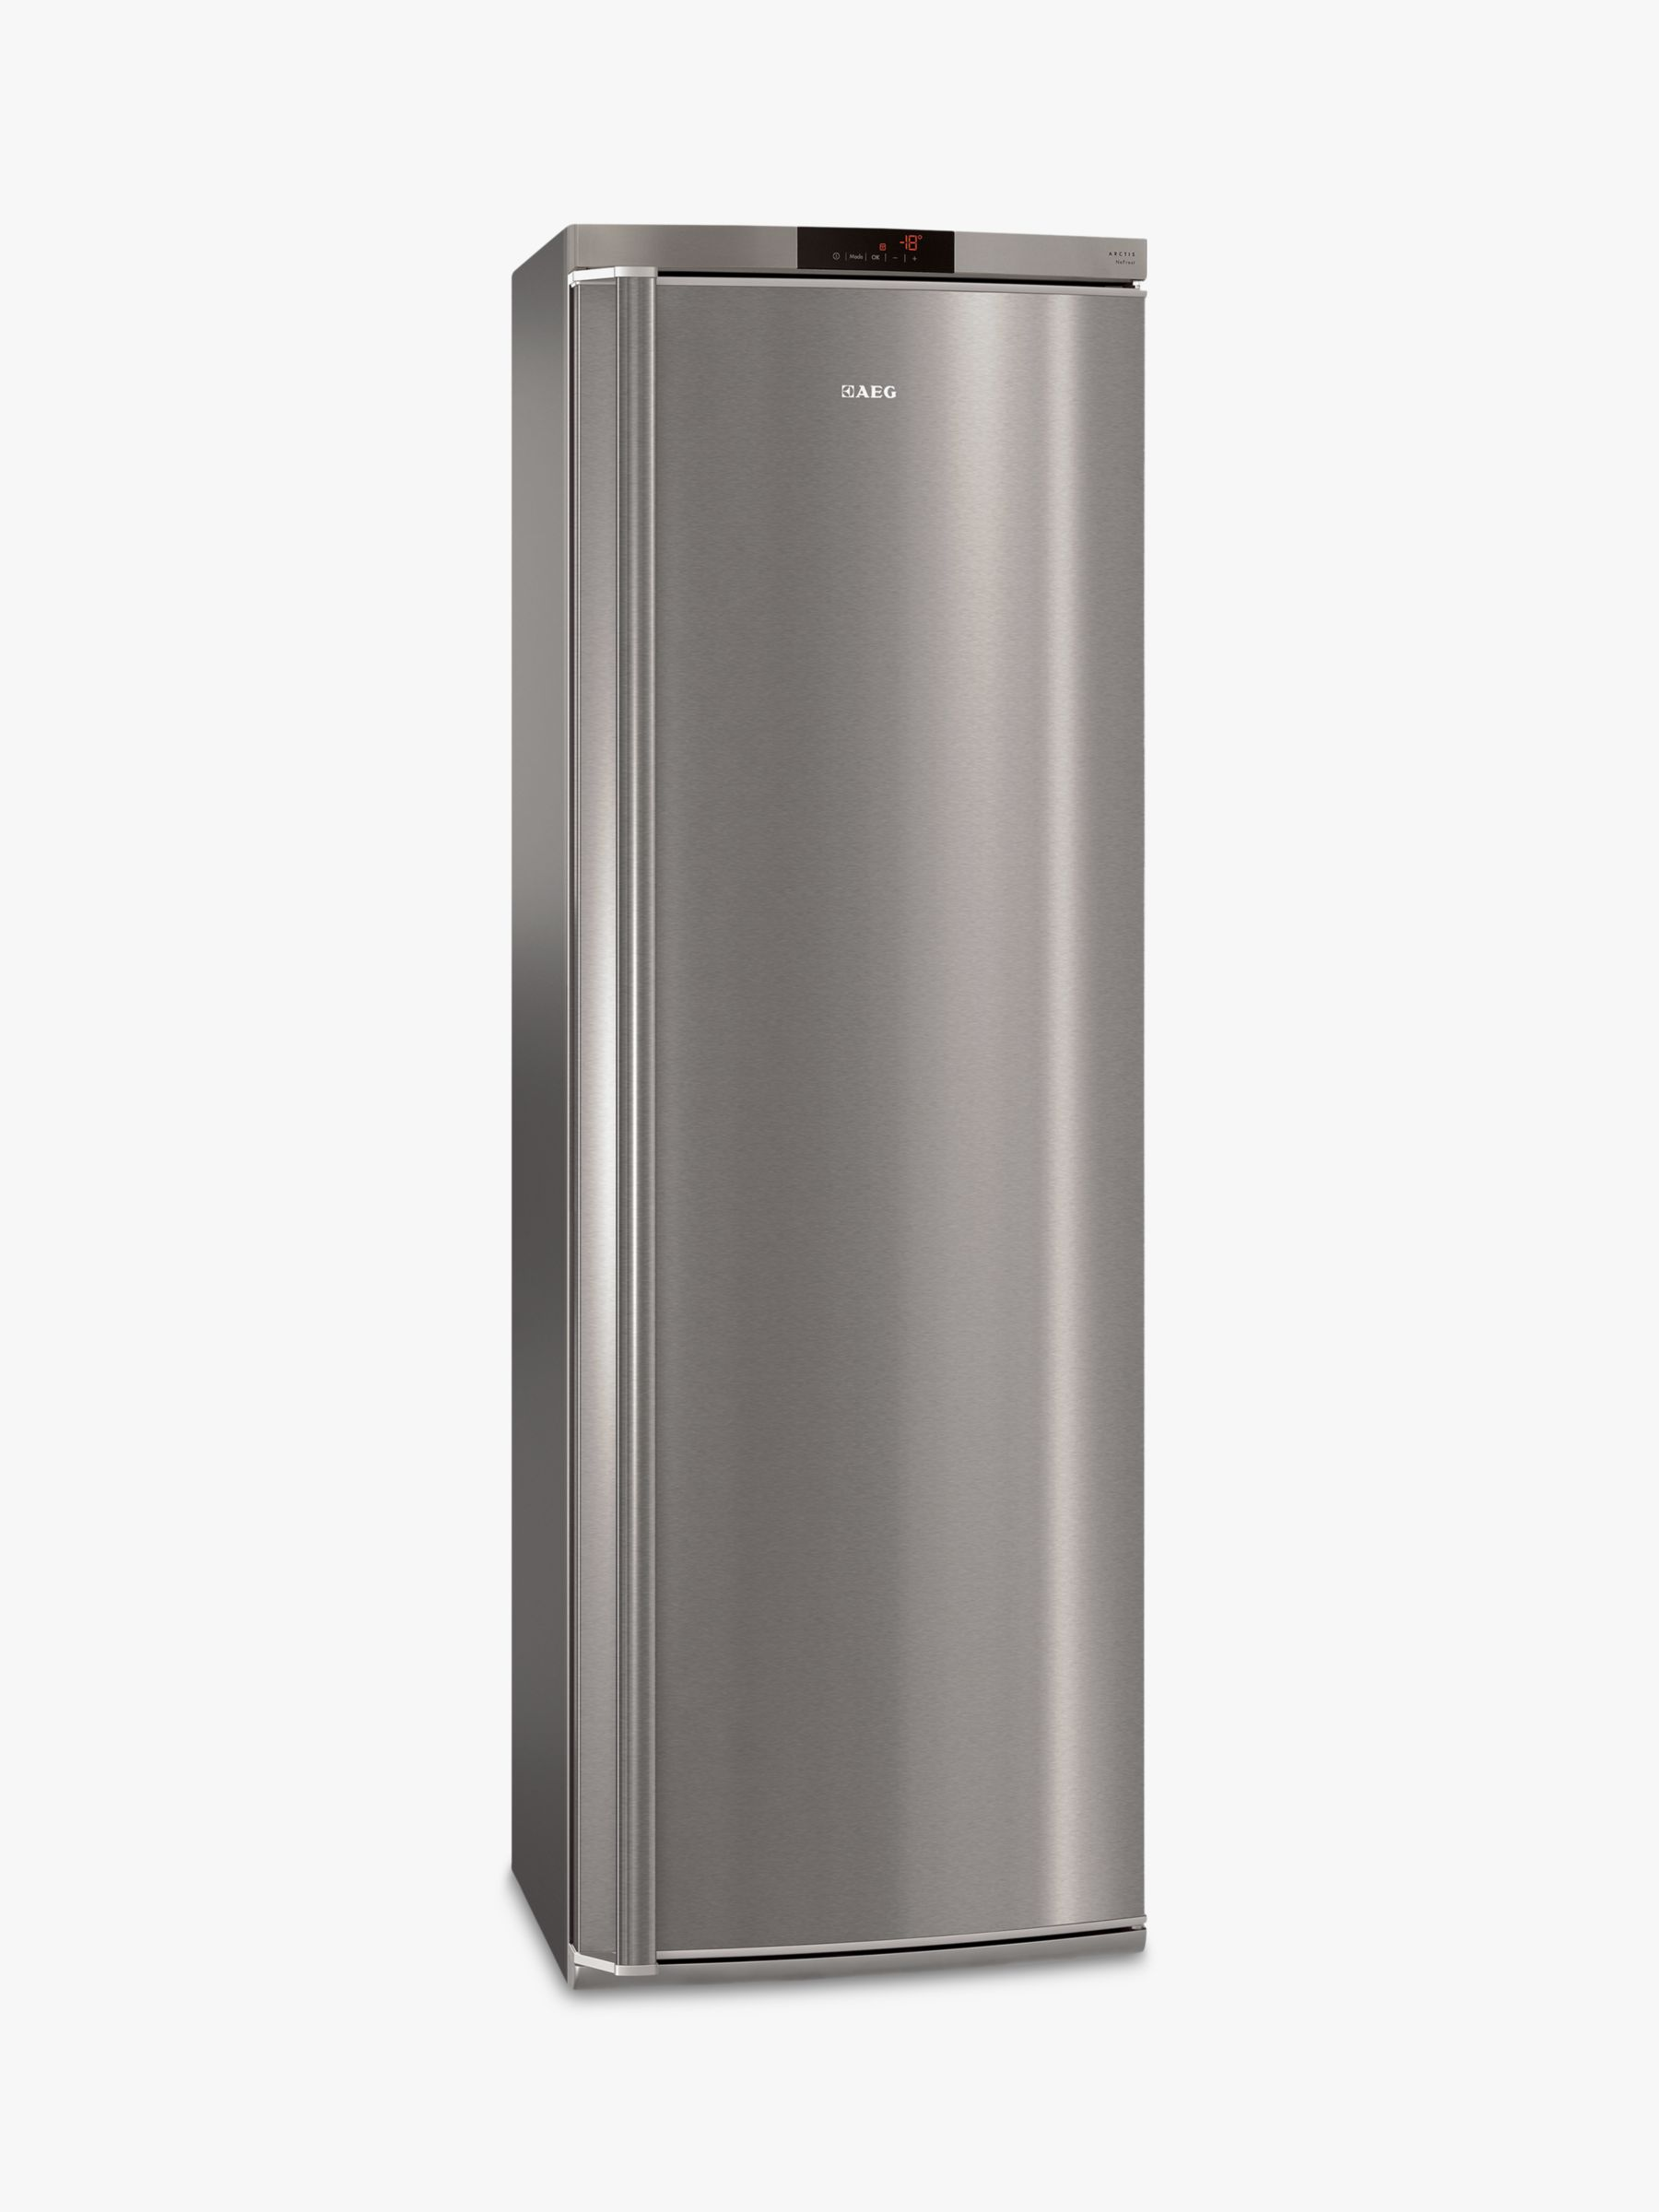 AEG AEG AGE62526NX Tall Freezer, A++ Energy Rating, 60cm Wide, Stainless Steel